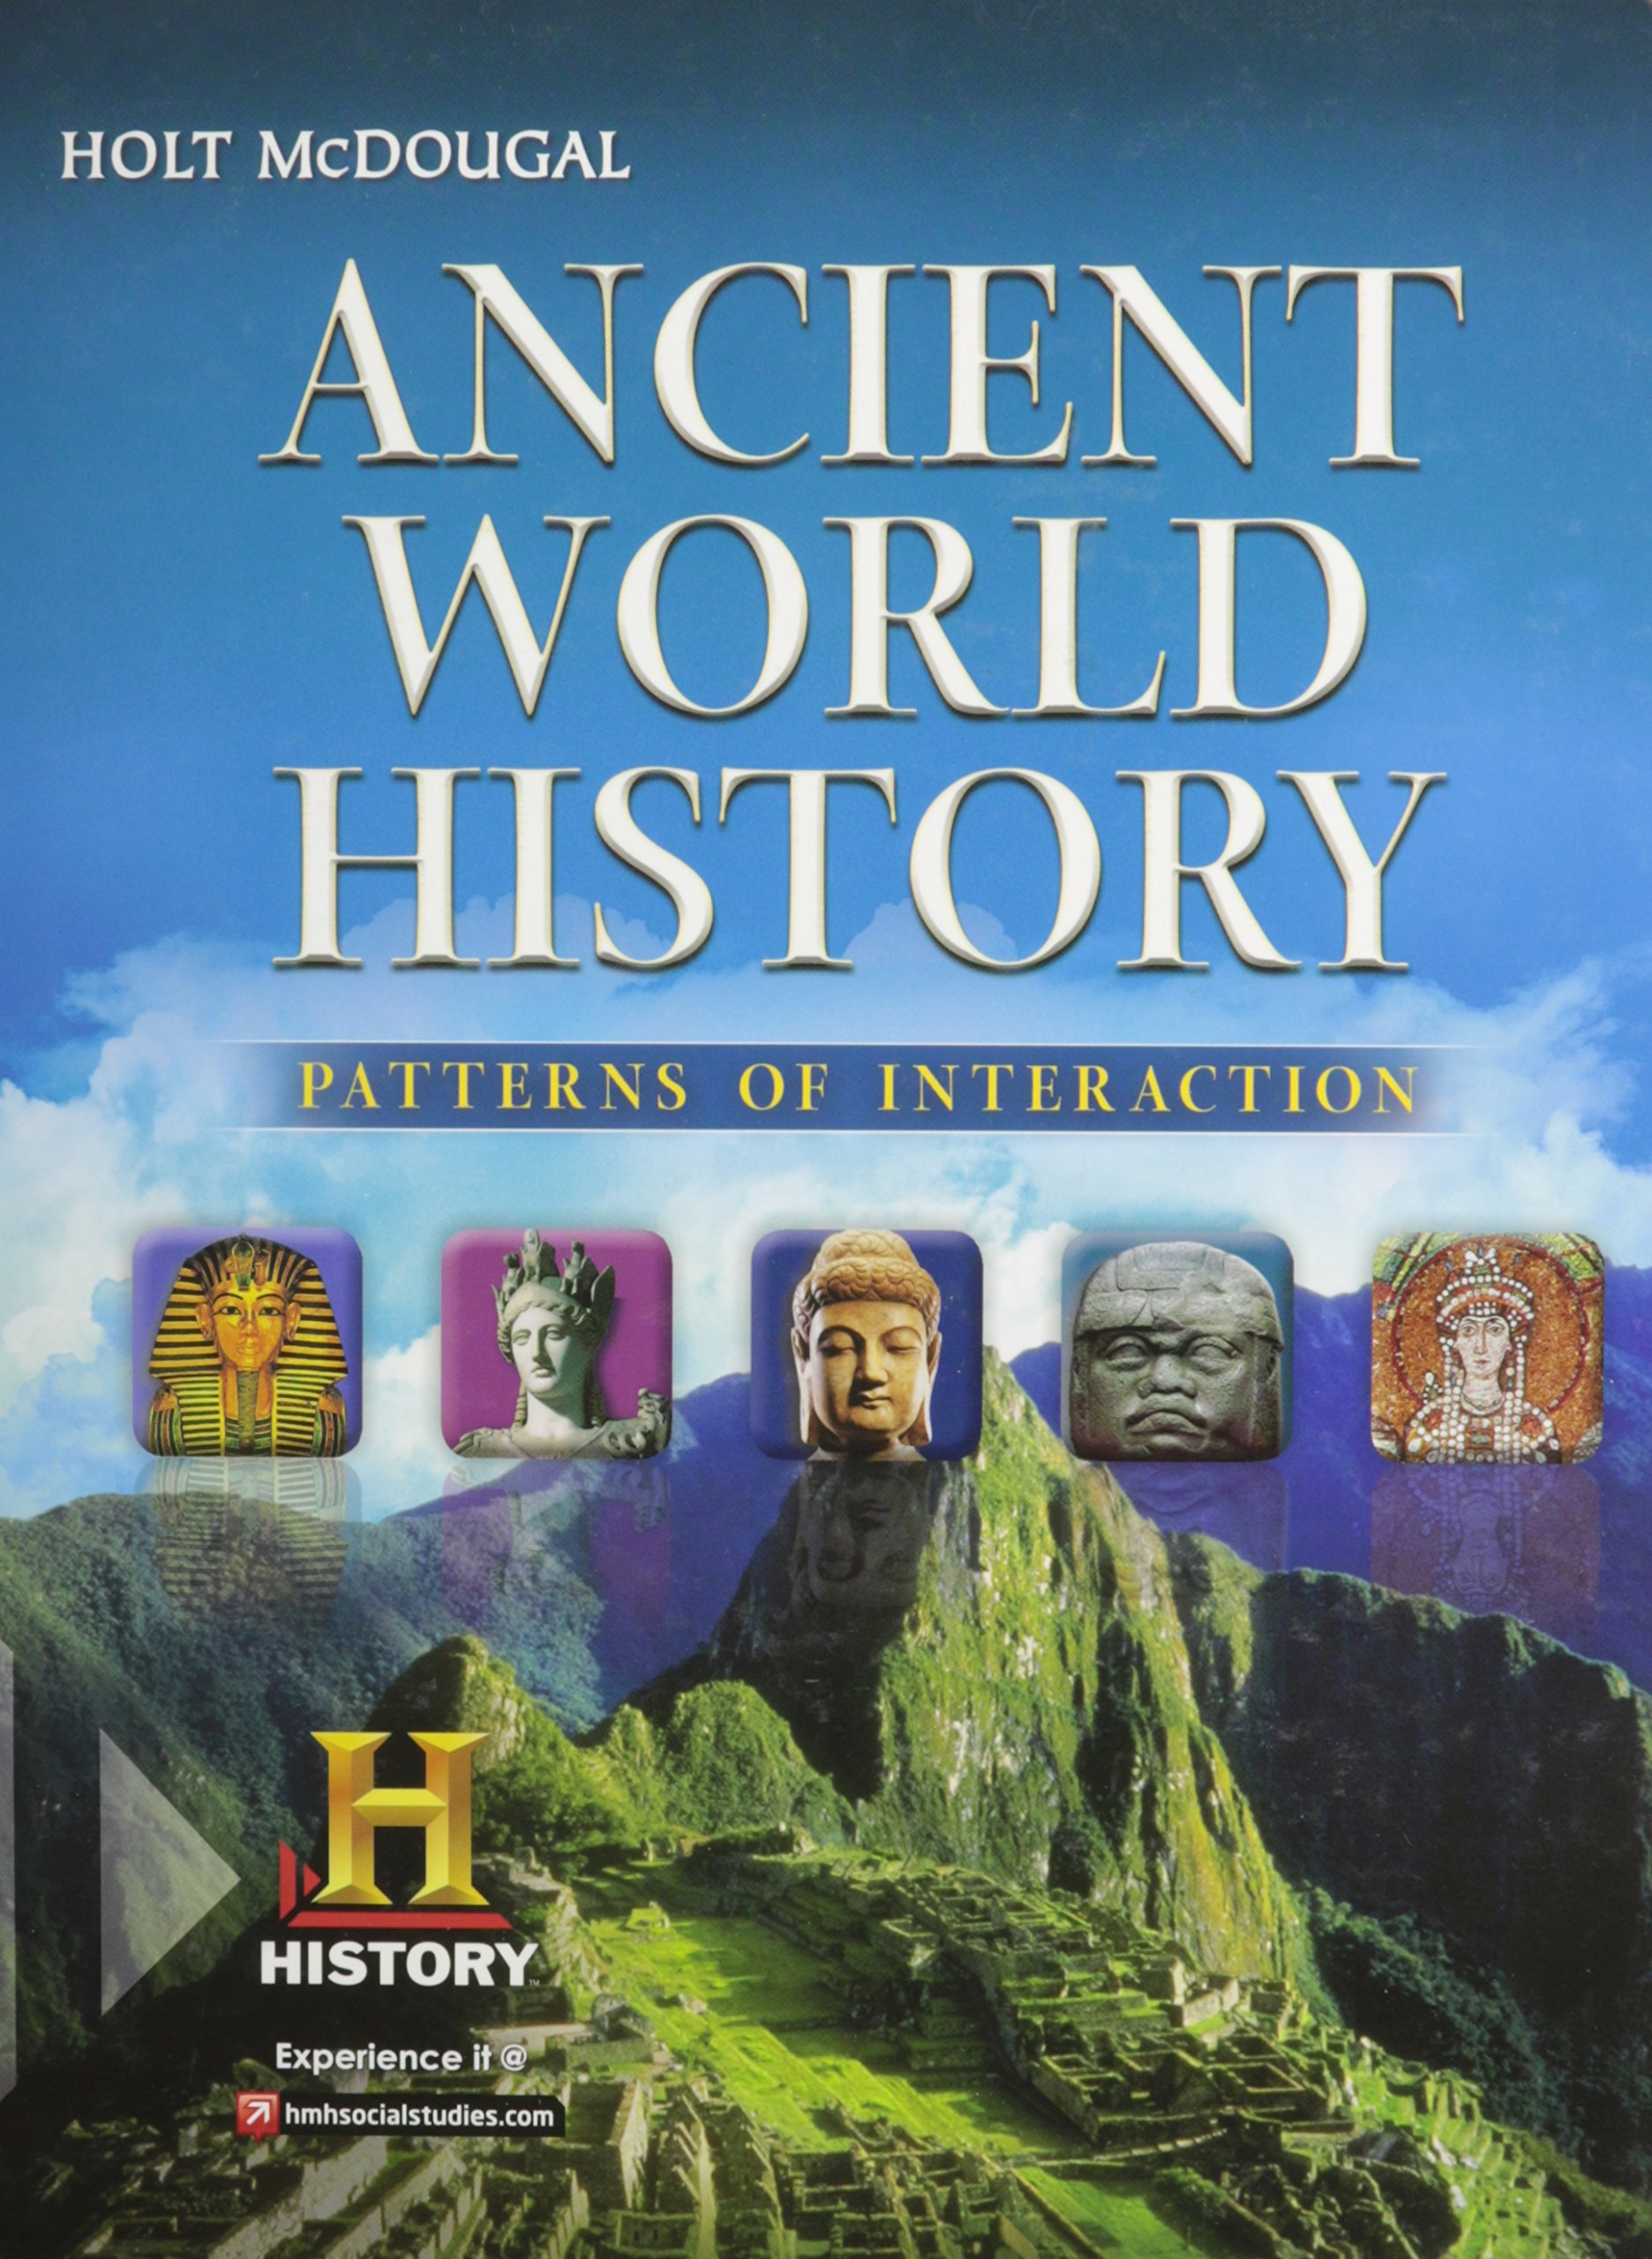 Holt Mcdougal World History Textbook Pdf 7th Grade